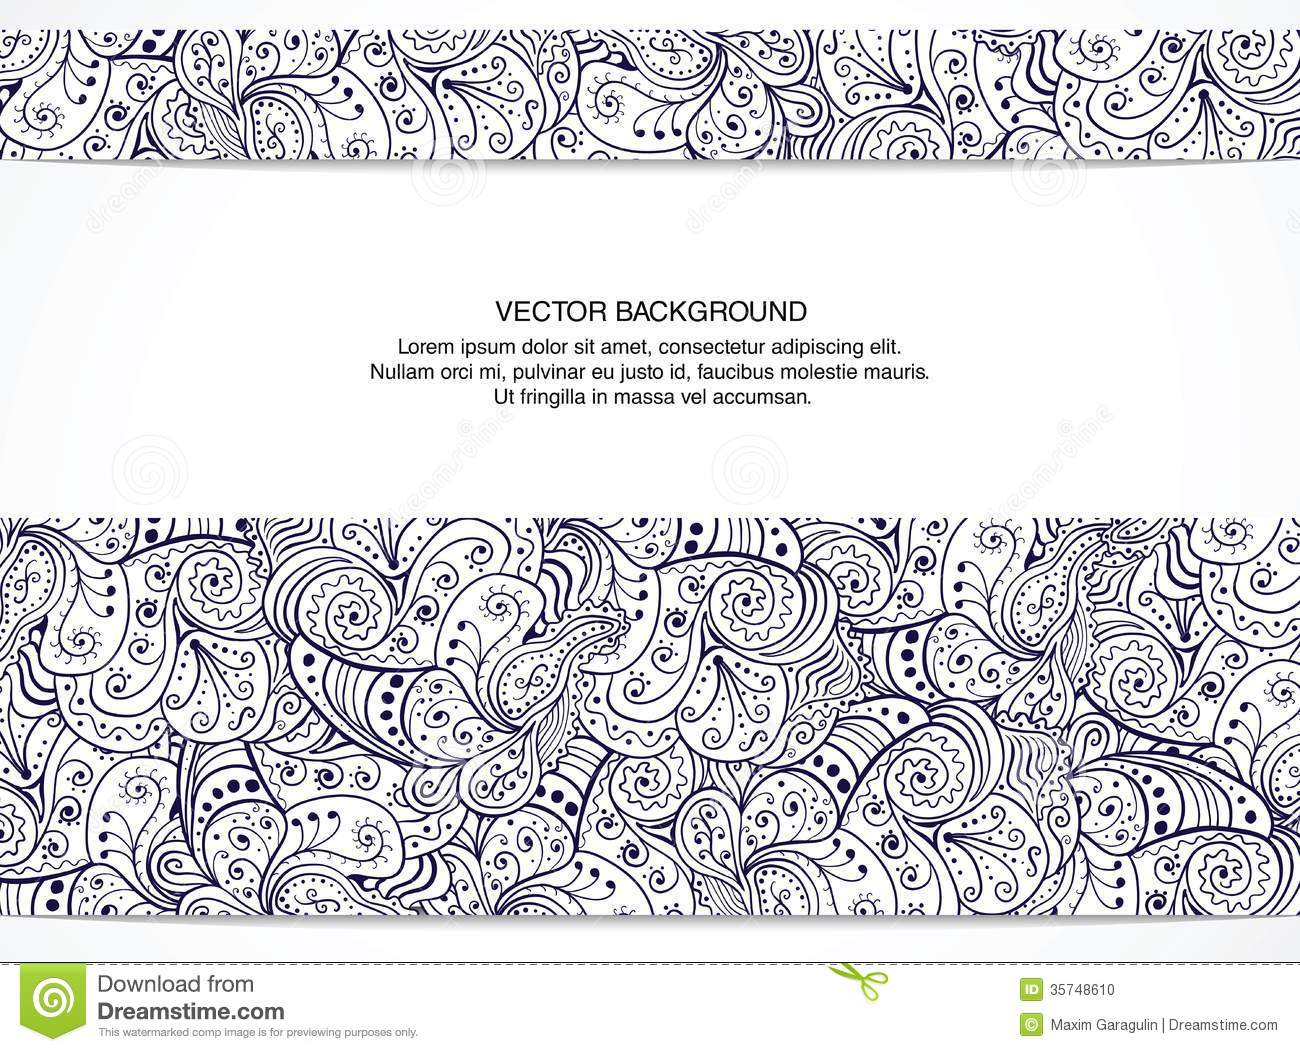 Beautiful floral invitation card black and white stock vector royalty free stock photo stopboris Image collections